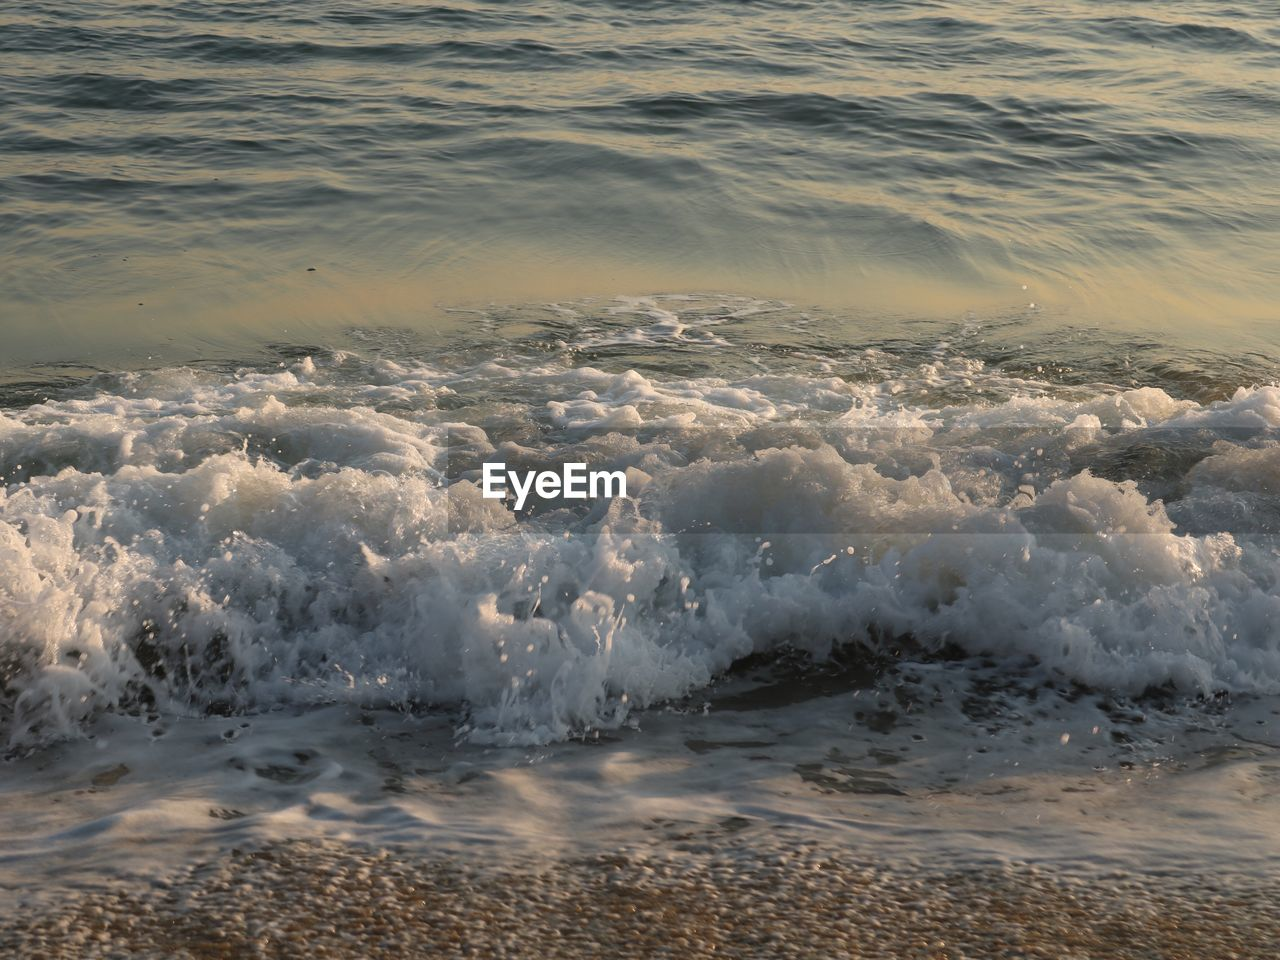 water, sea, nature, wave, beauty in nature, motion, waterfront, no people, outdoors, scenics, tranquility, power in nature, day, beach, sky